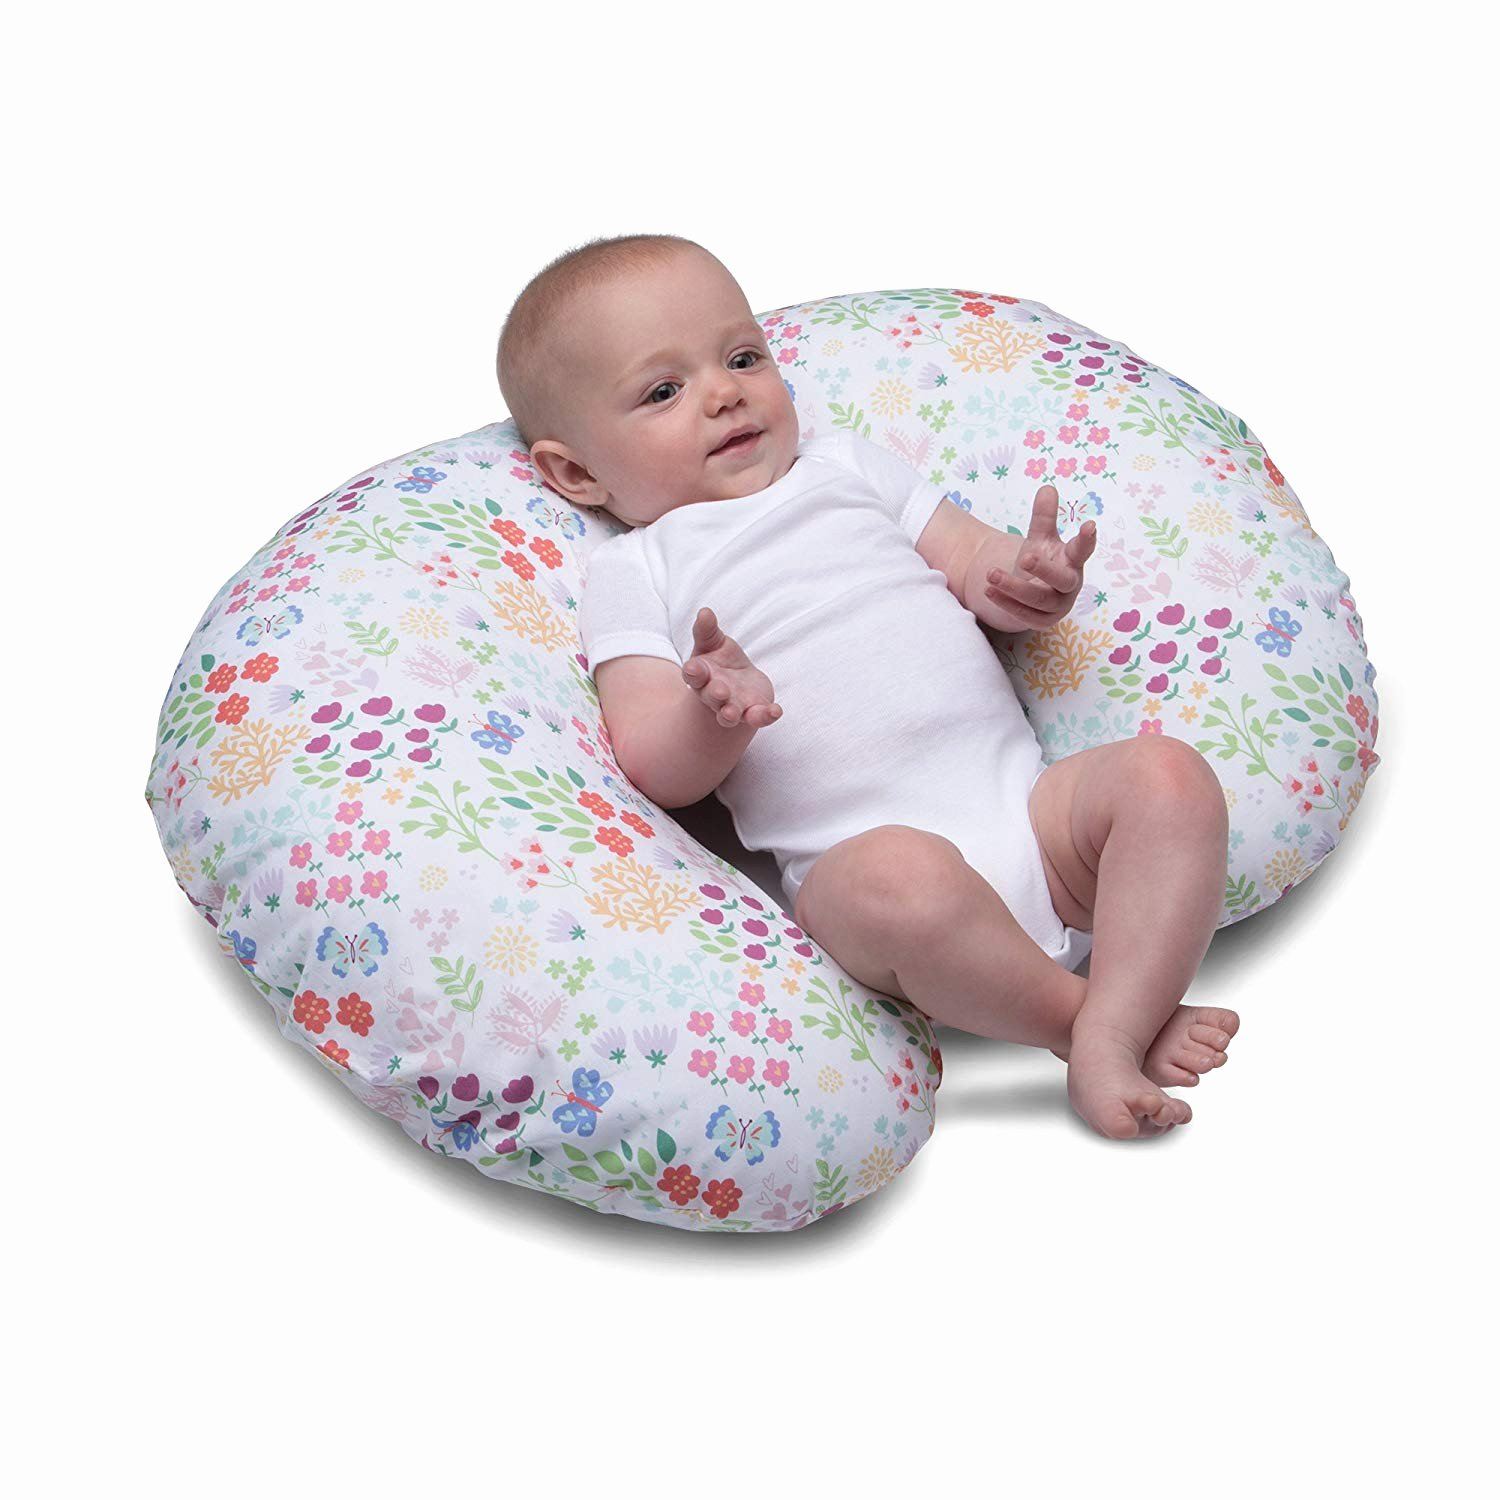 Babies R Us Sleep Positioner New Boppy Nursing Pillow and Positioner Backyard Blooms